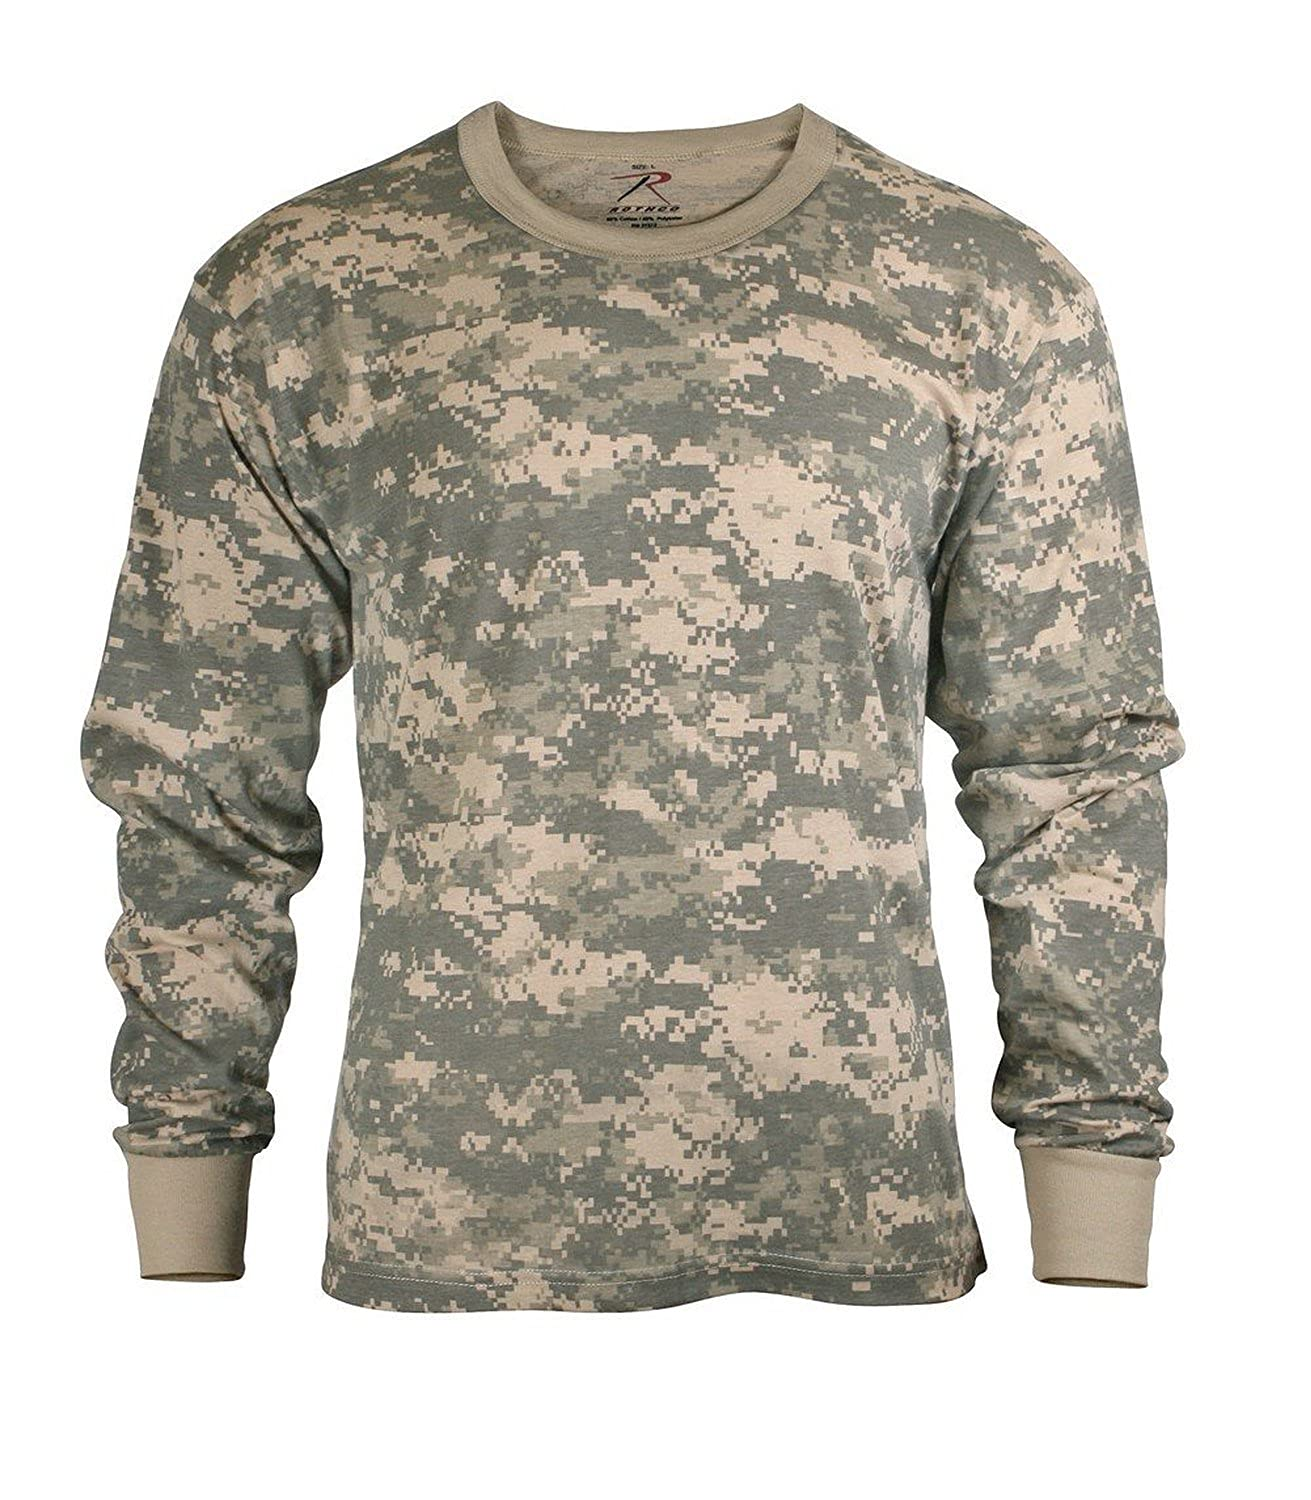 Army Digital Camo Jerseys Mens Army Digital Camo Long